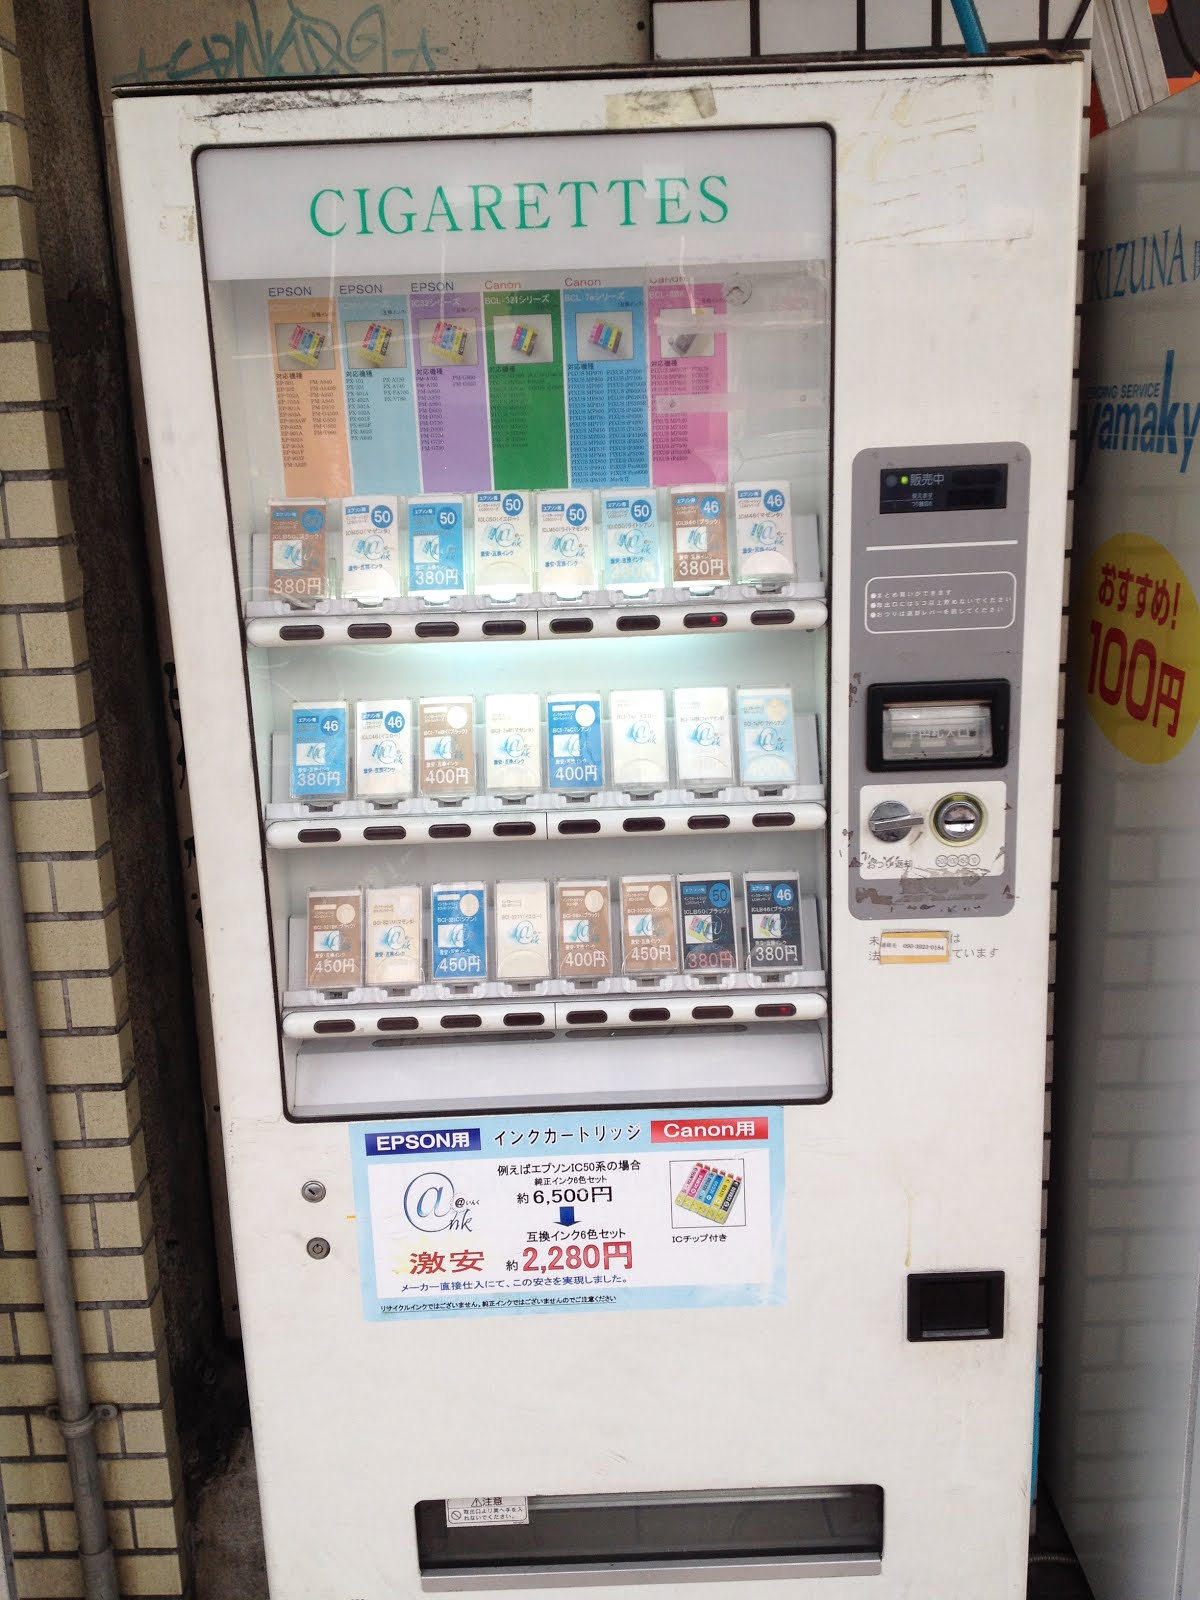 Kansai Culture Interesting Vending Machines In Japan Machine Wiring Diagram The Says Cigarettes At Top But Look Closely This Has Been Re Purposed To Sell Printer Ink Cartridges Den Town Osaka